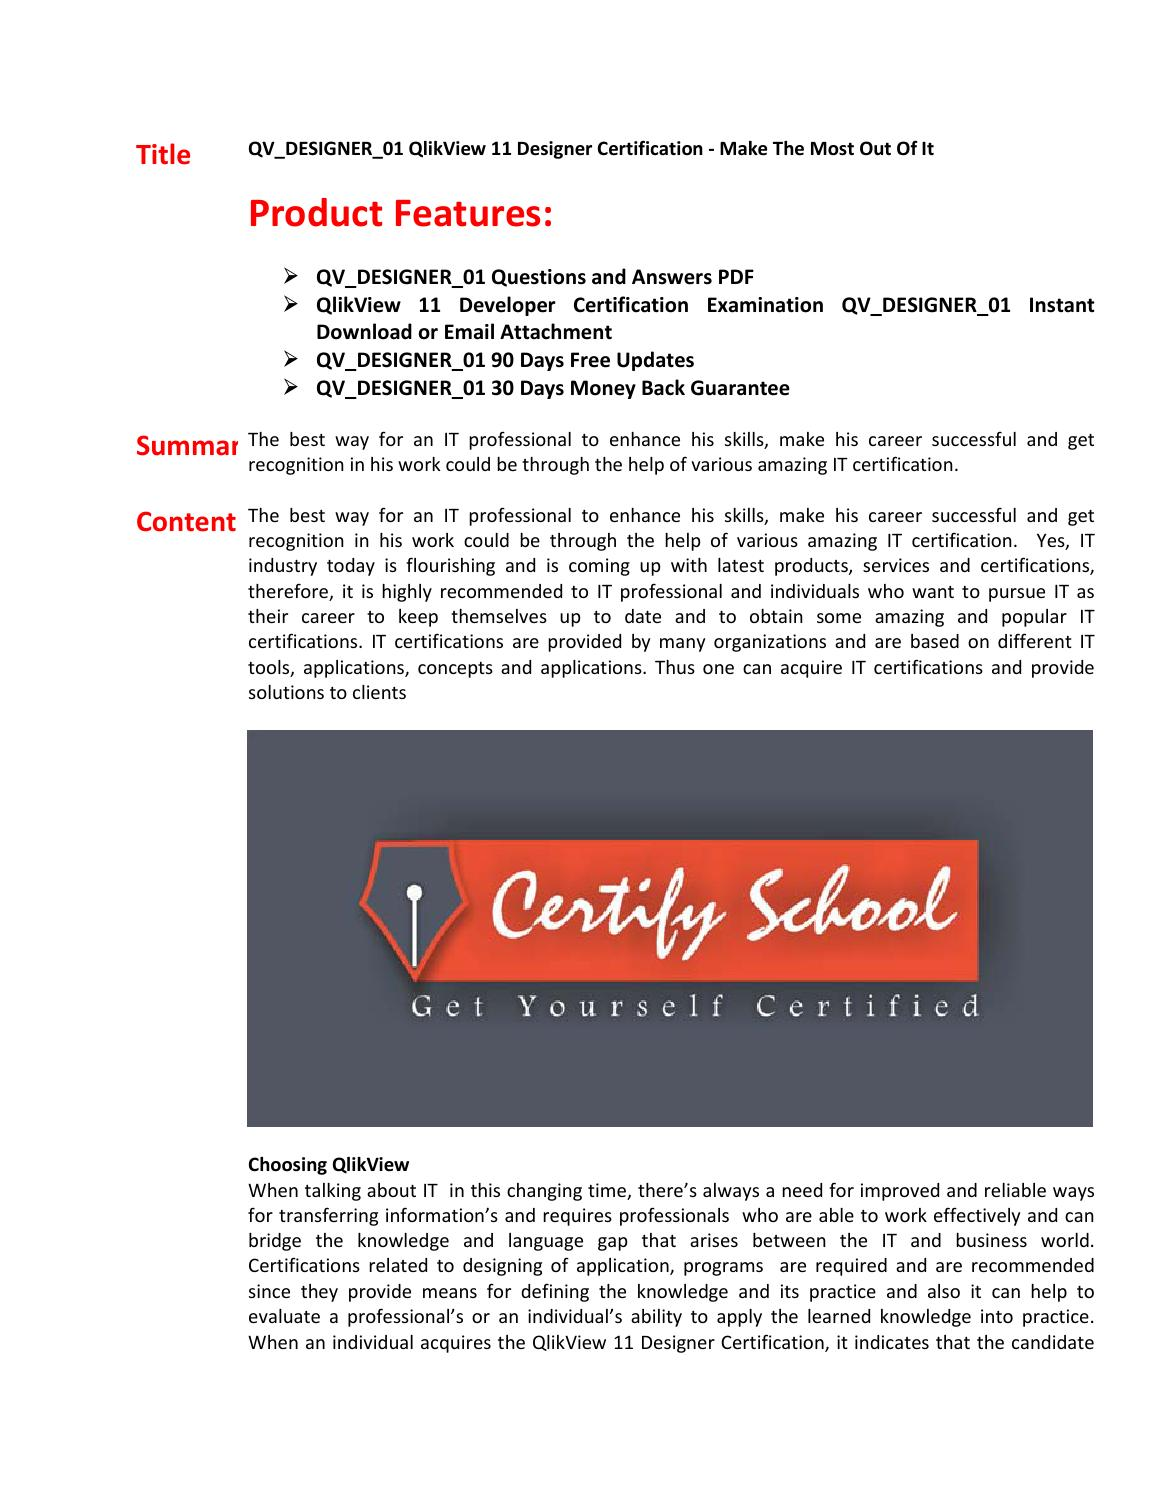 Qvdesigner01 Exam Questions Answers By Dalestyen Issuu